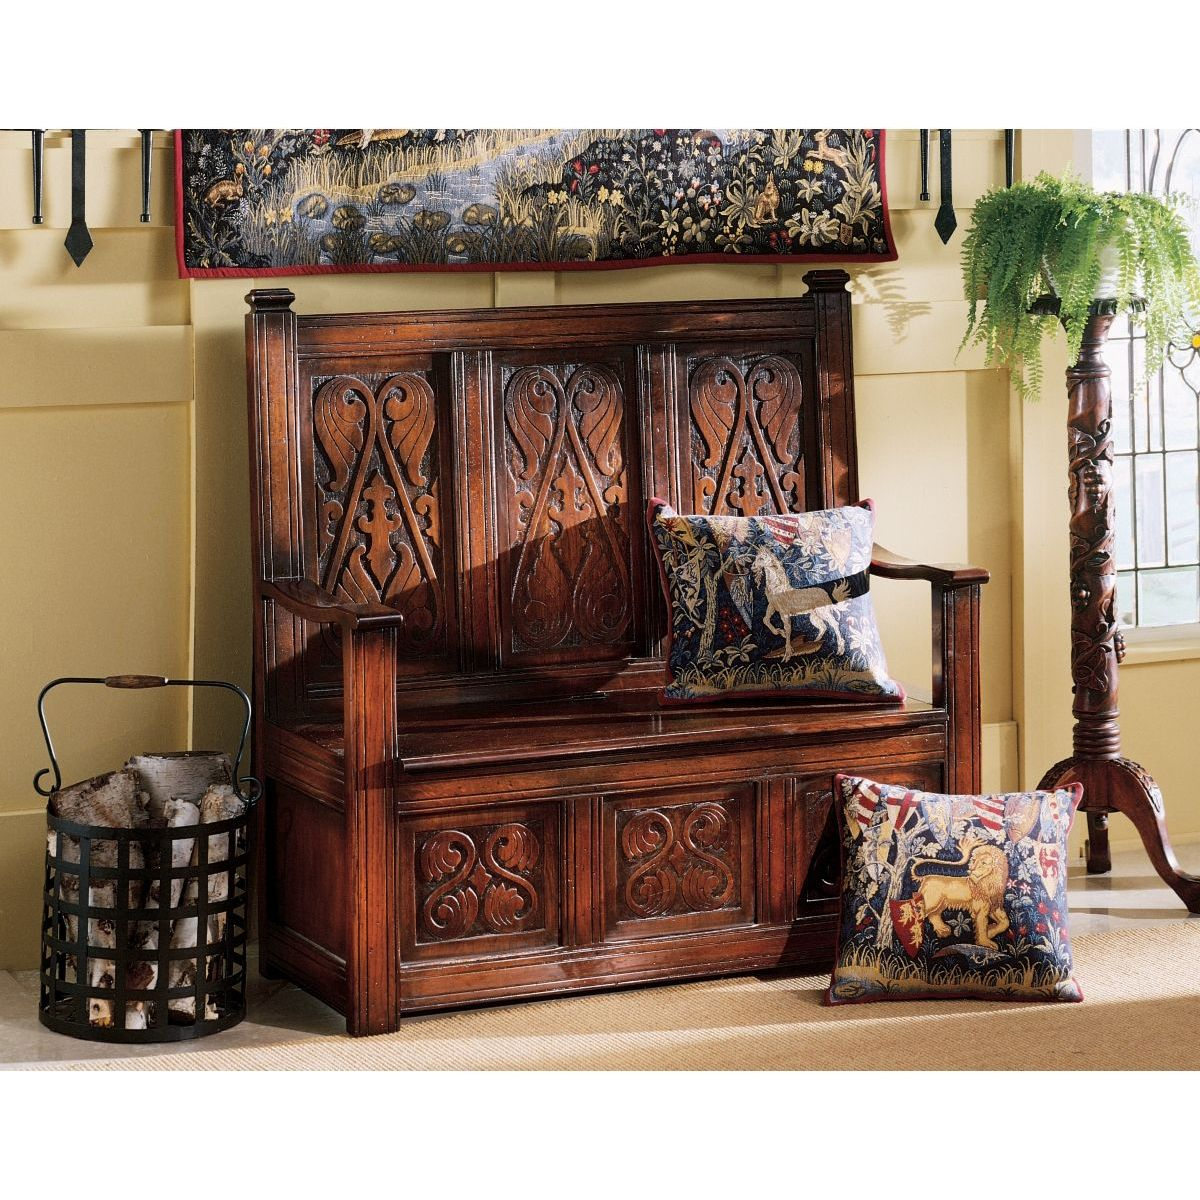 Furniture Clearance Nyc: Sixteenth Century Decor/images